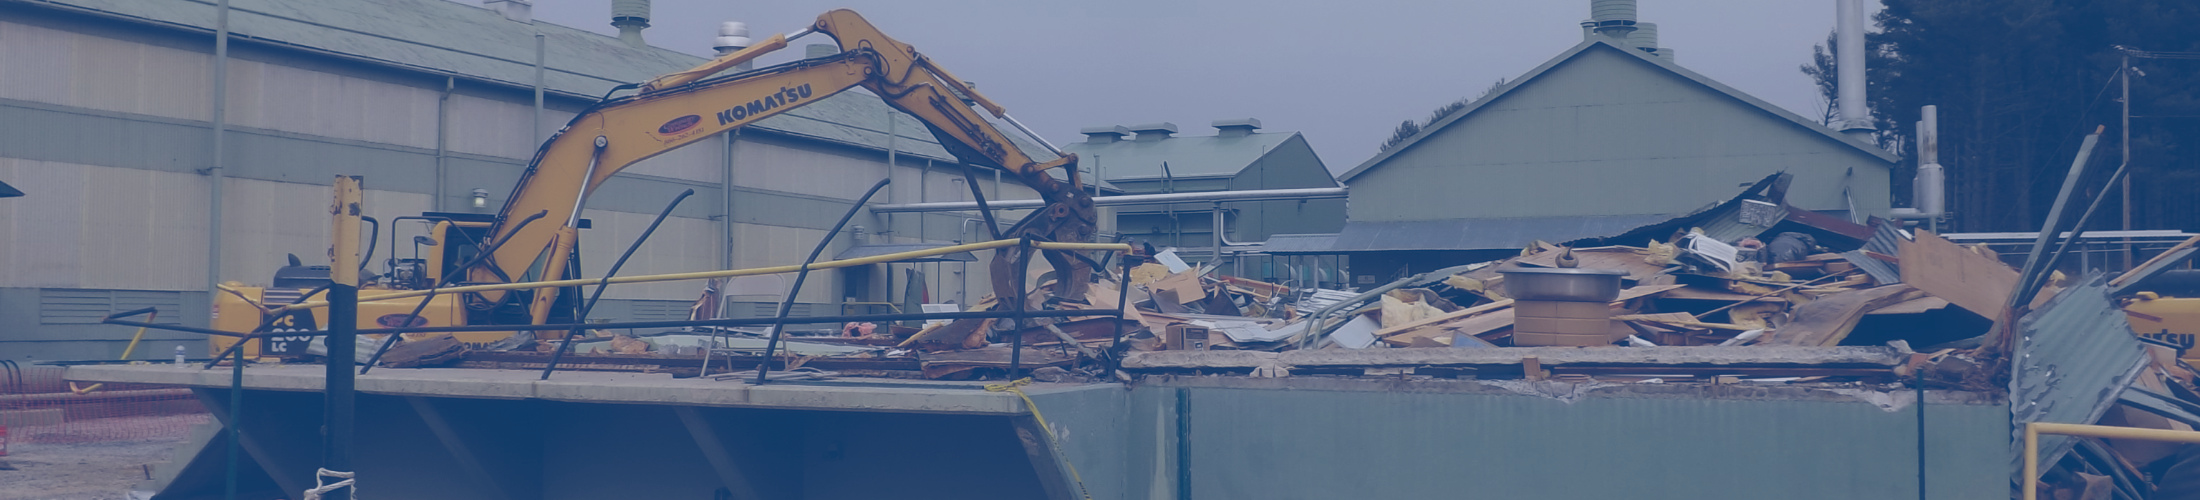 Demolition of PCB impacted Eletrical Building